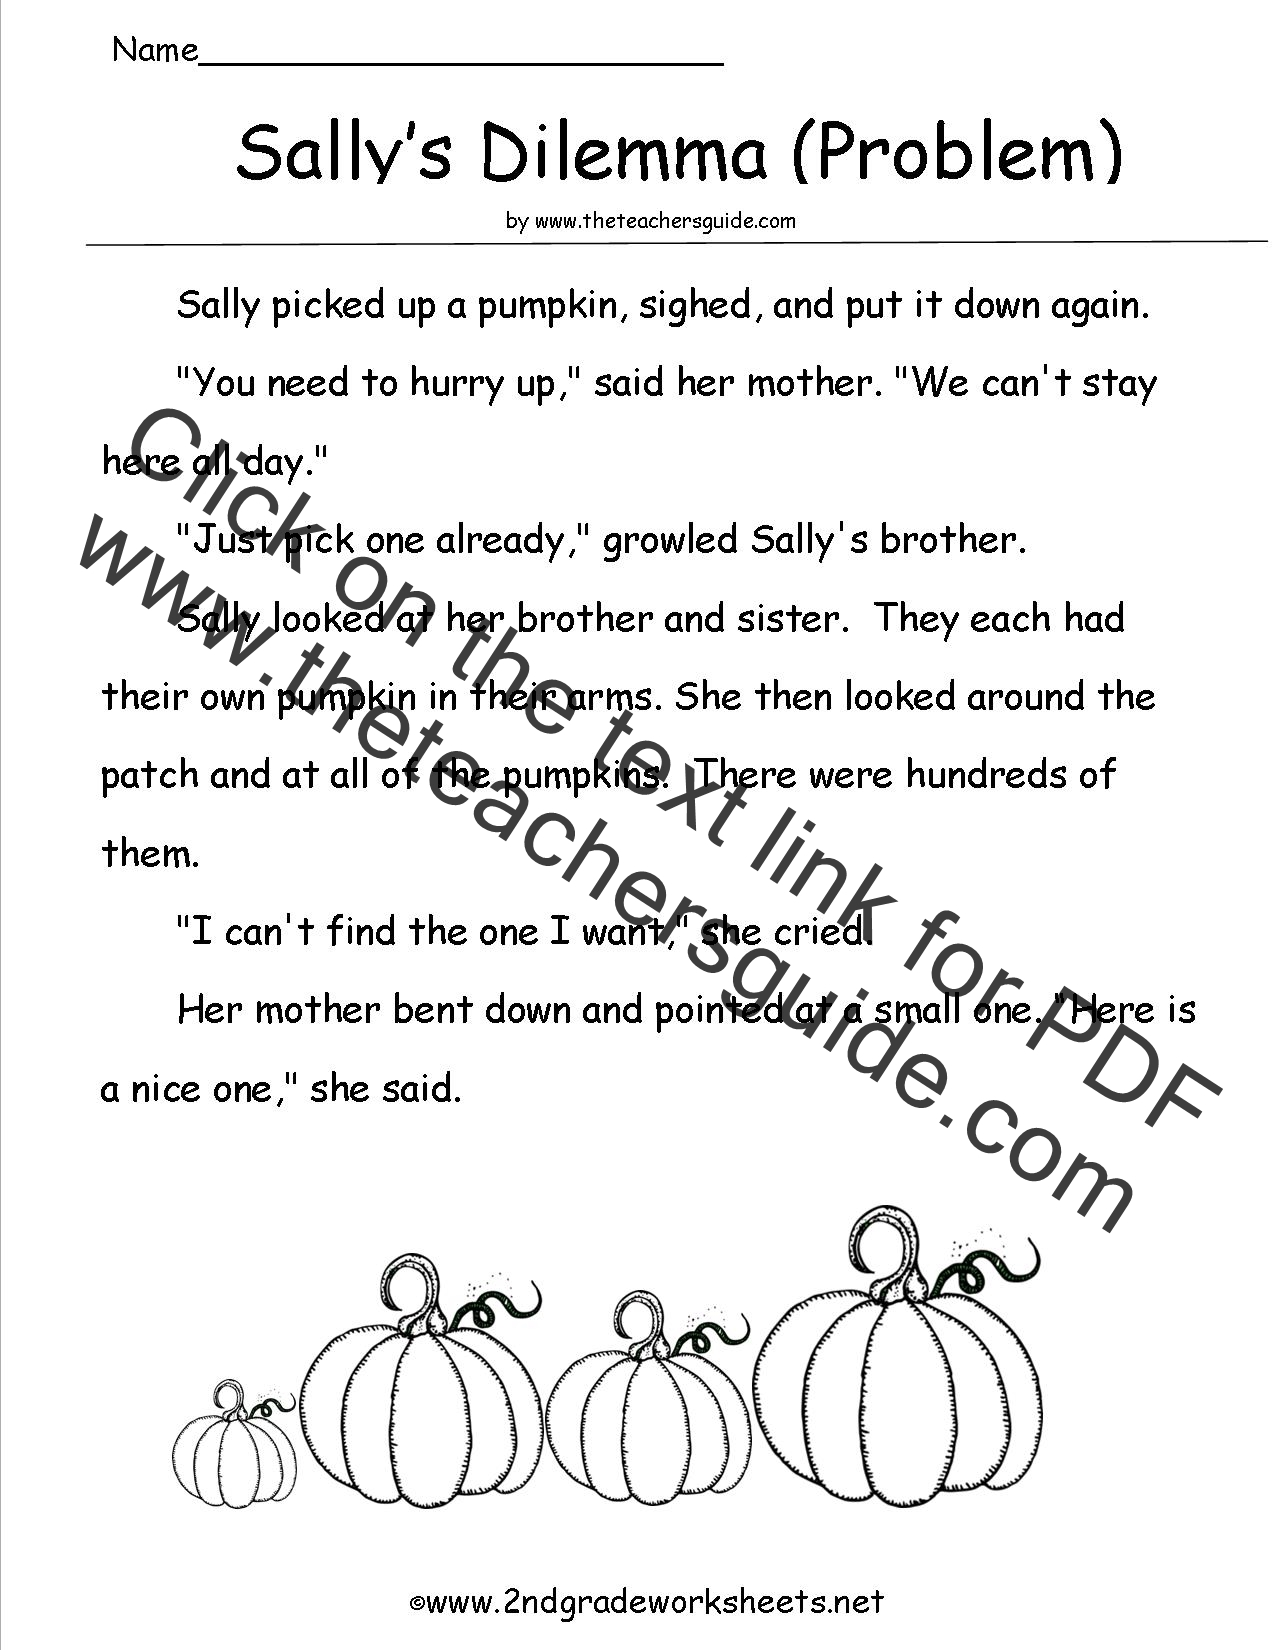 Halloween Worksheets and Printouts – Halloween Worksheets Printables